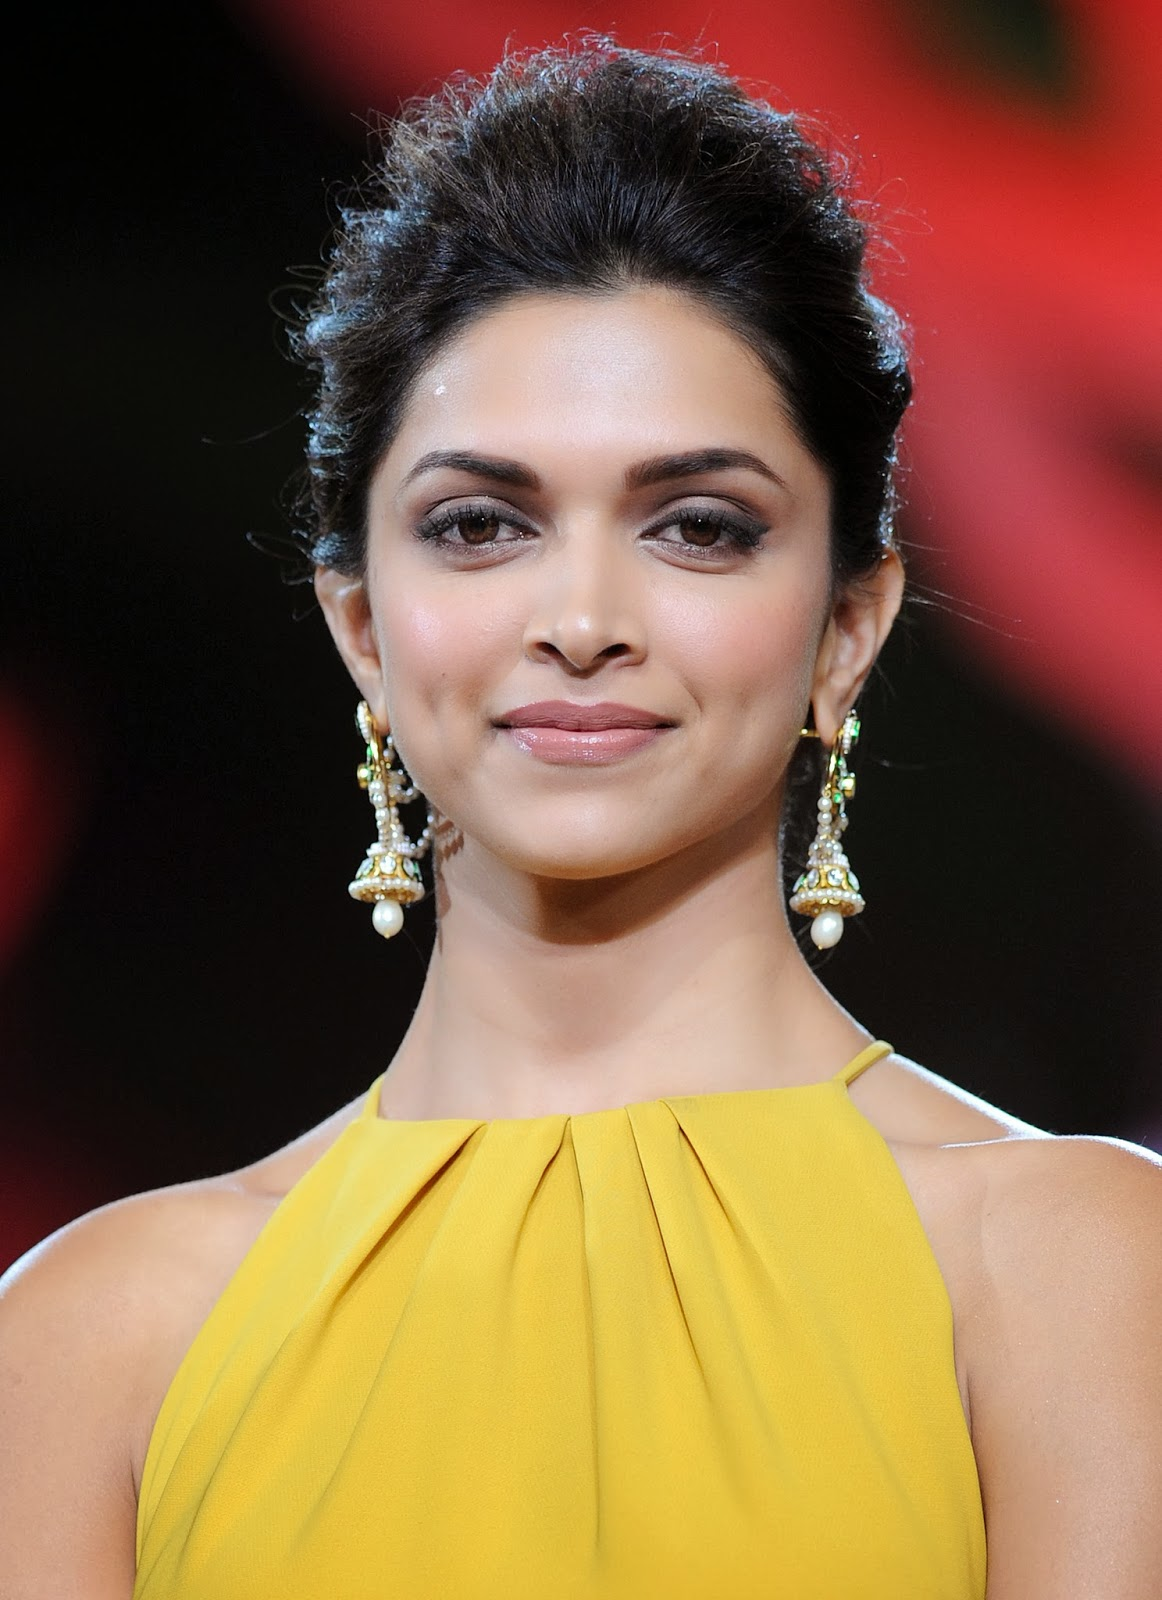 Actress, Annual, Bollywood, Celebrities, Ceremony, Deepika Padukone, Director, Festival, Film, France, Germany, Hollywood, India, Iran, Marrakech, Marrakech International Film Festival, Morocco, Movie, Showbiz, Writer,